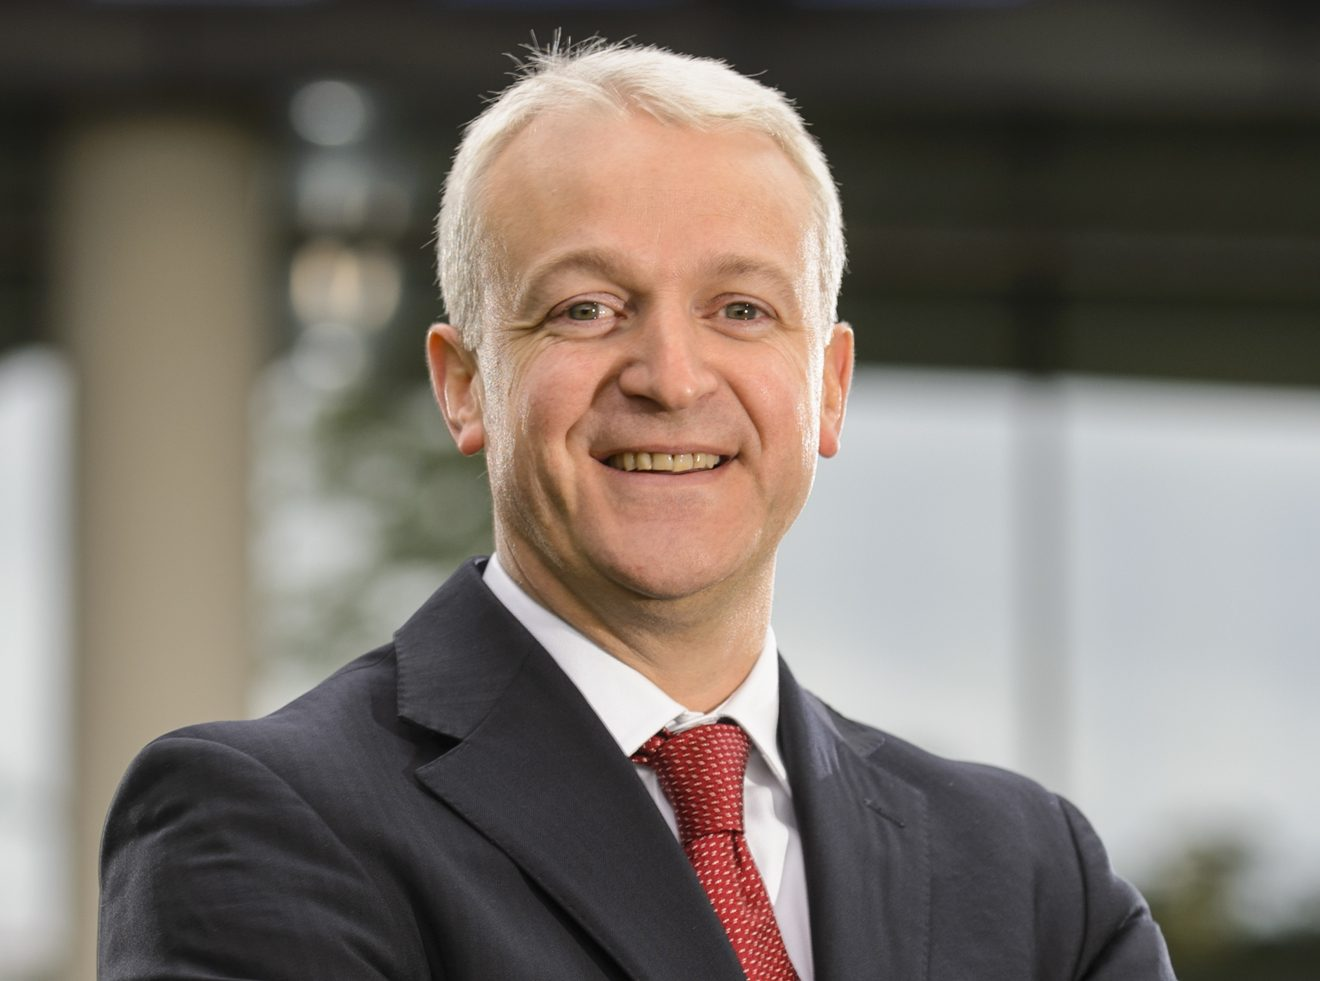 Tesco Bank managing director David McCreadie